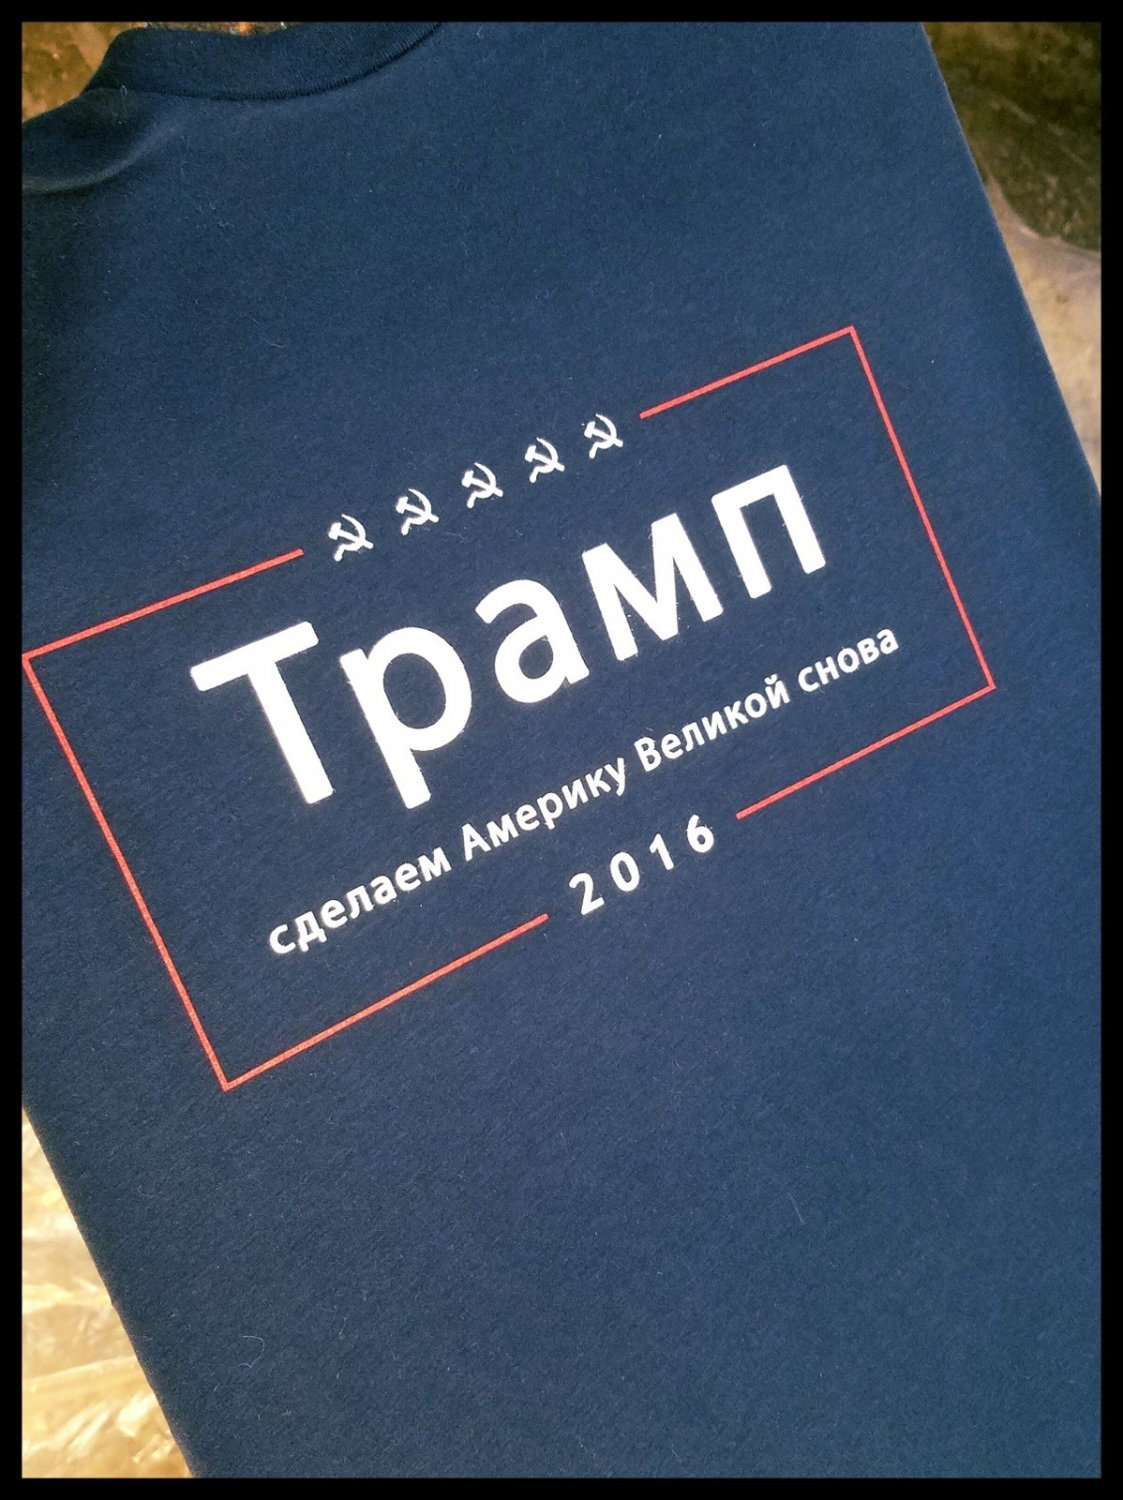 TRUMP CAMPAIGN SHIRT Completely in Russian - NAVY BLUE Premium Sueded T Shirt SIZE 2XL